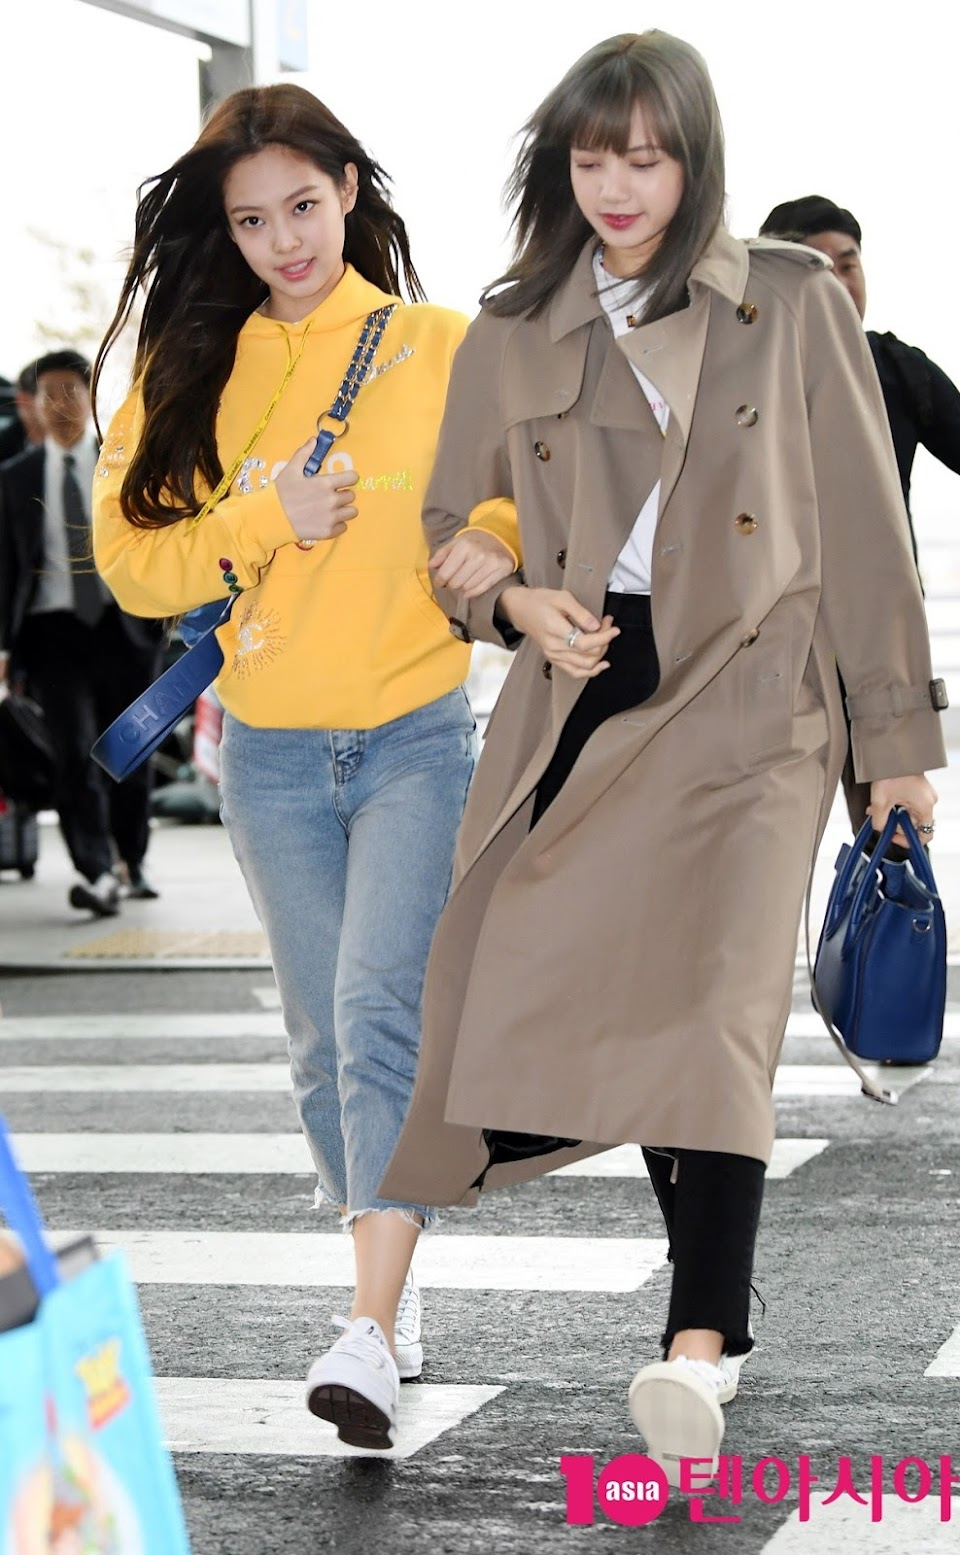 4-BLACKPINK-Jennie-airport-Photo-9-April-2019-Incheon-to-Thailand (1)